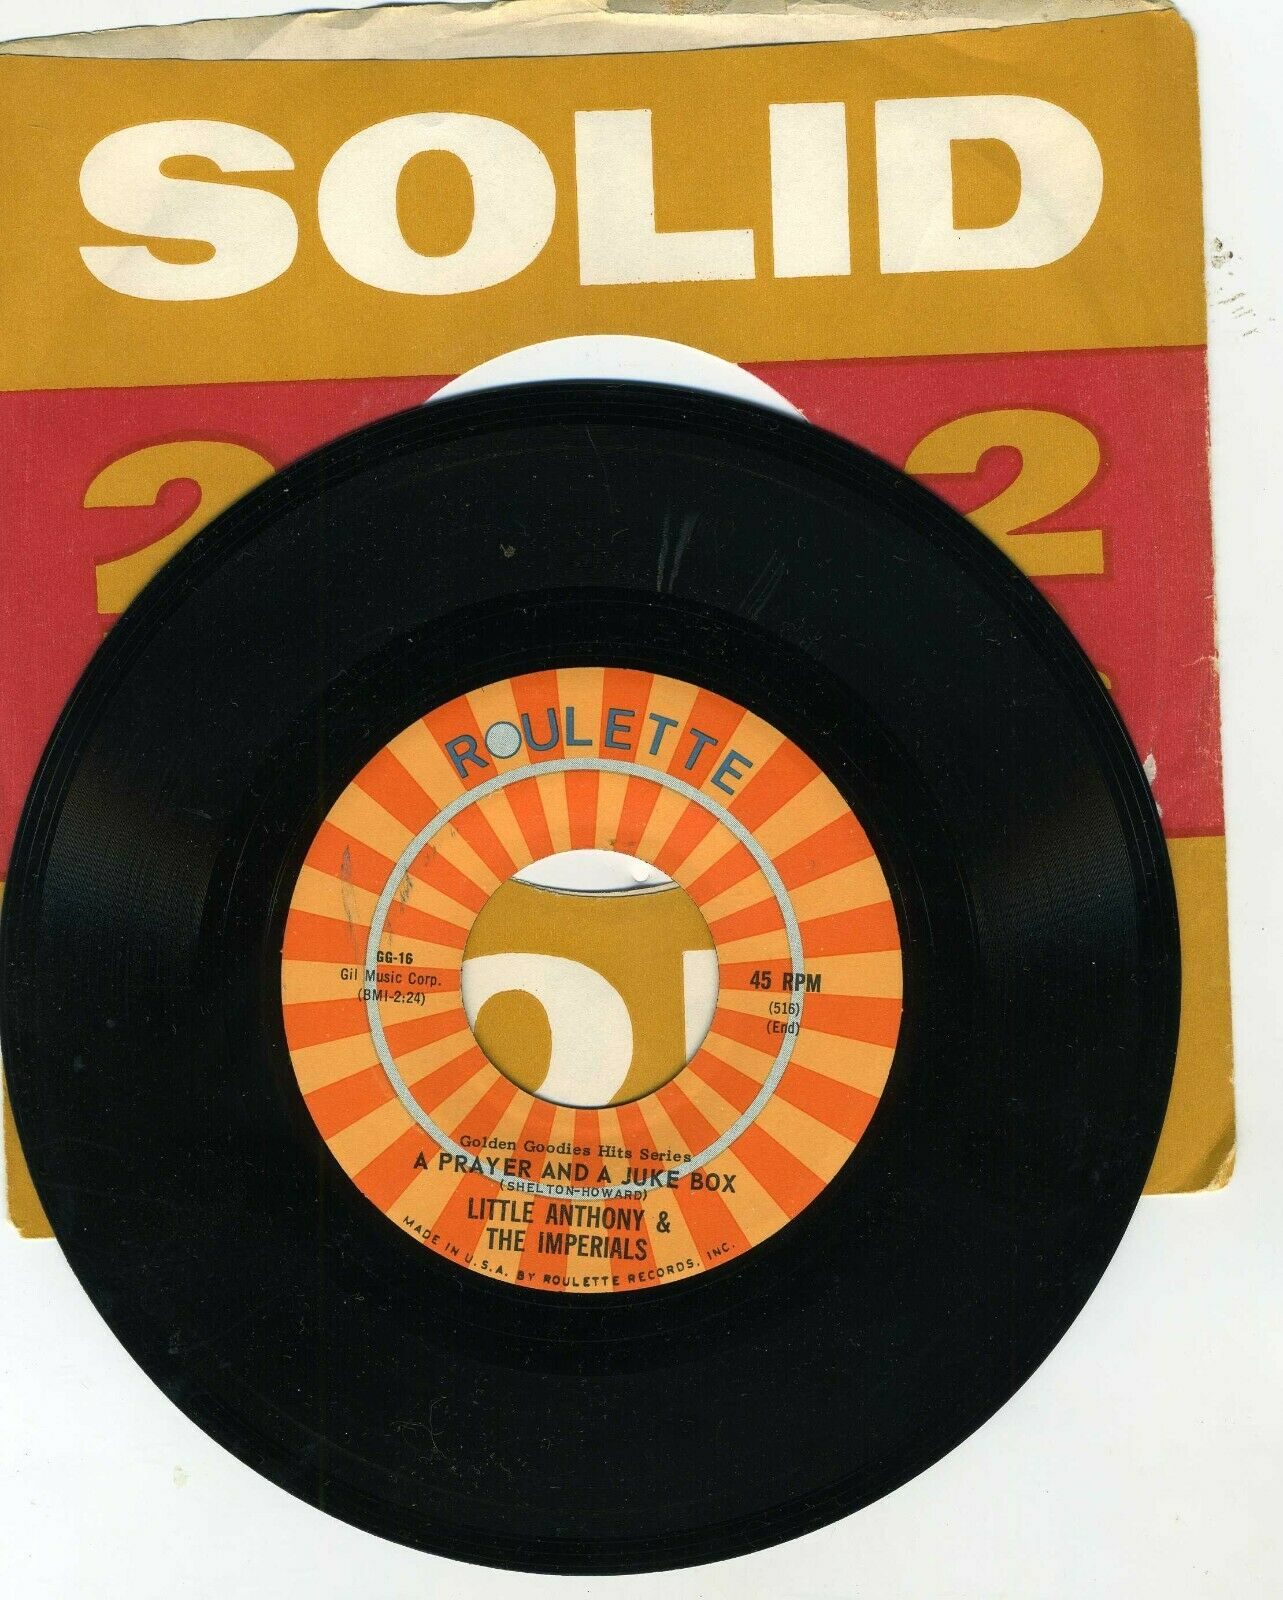 Little Anthony The Imperials Tears On My Pillow / A Prayer And A Juke Box 45 - $4.00